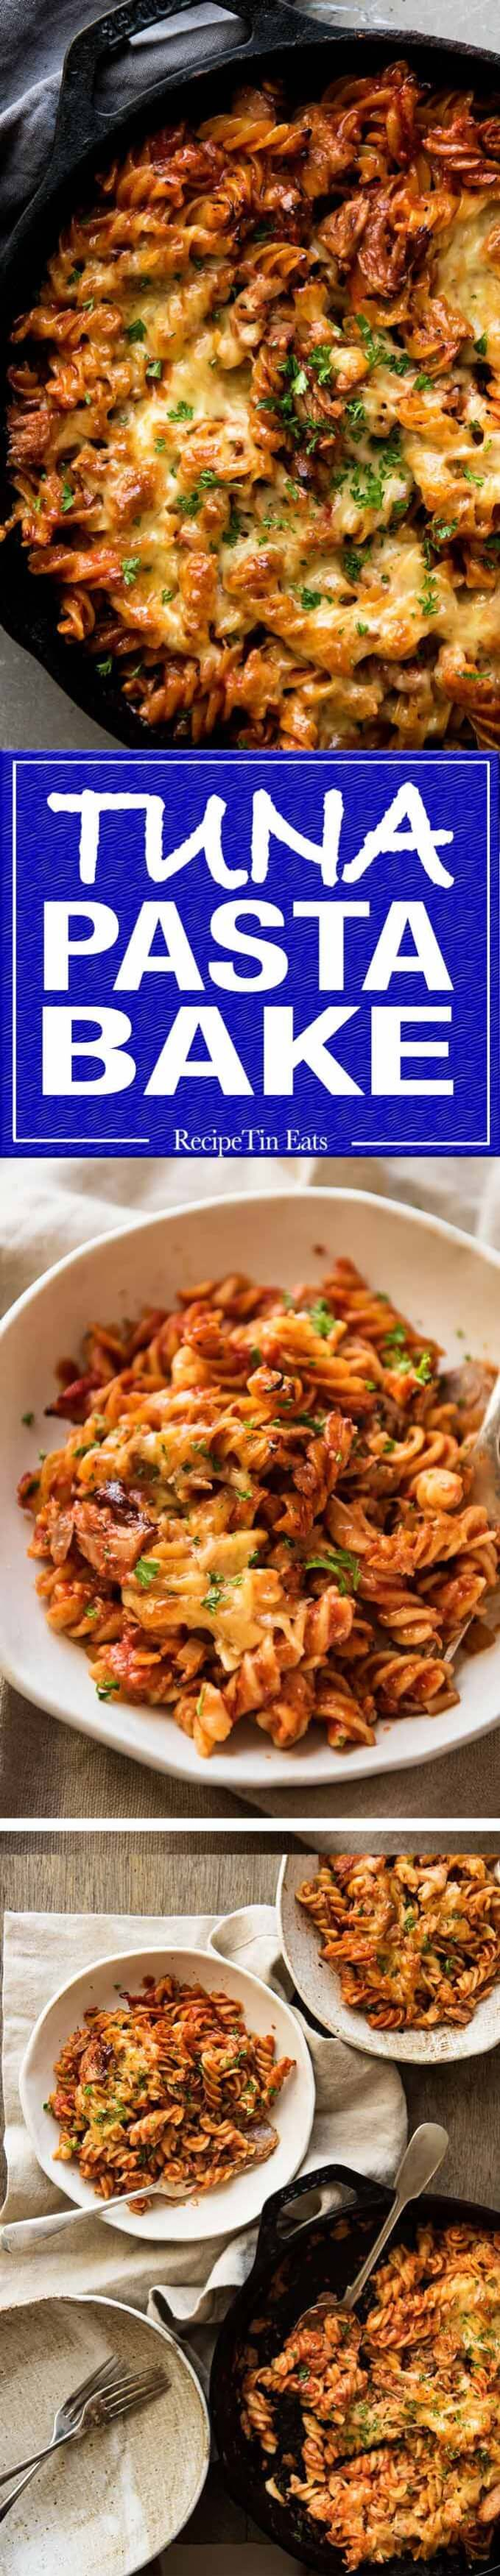 Everybody should know how to make a truly delicious Tuna Pasta Bake, for all those times when your cupboards are bare! www.recipetineats.com